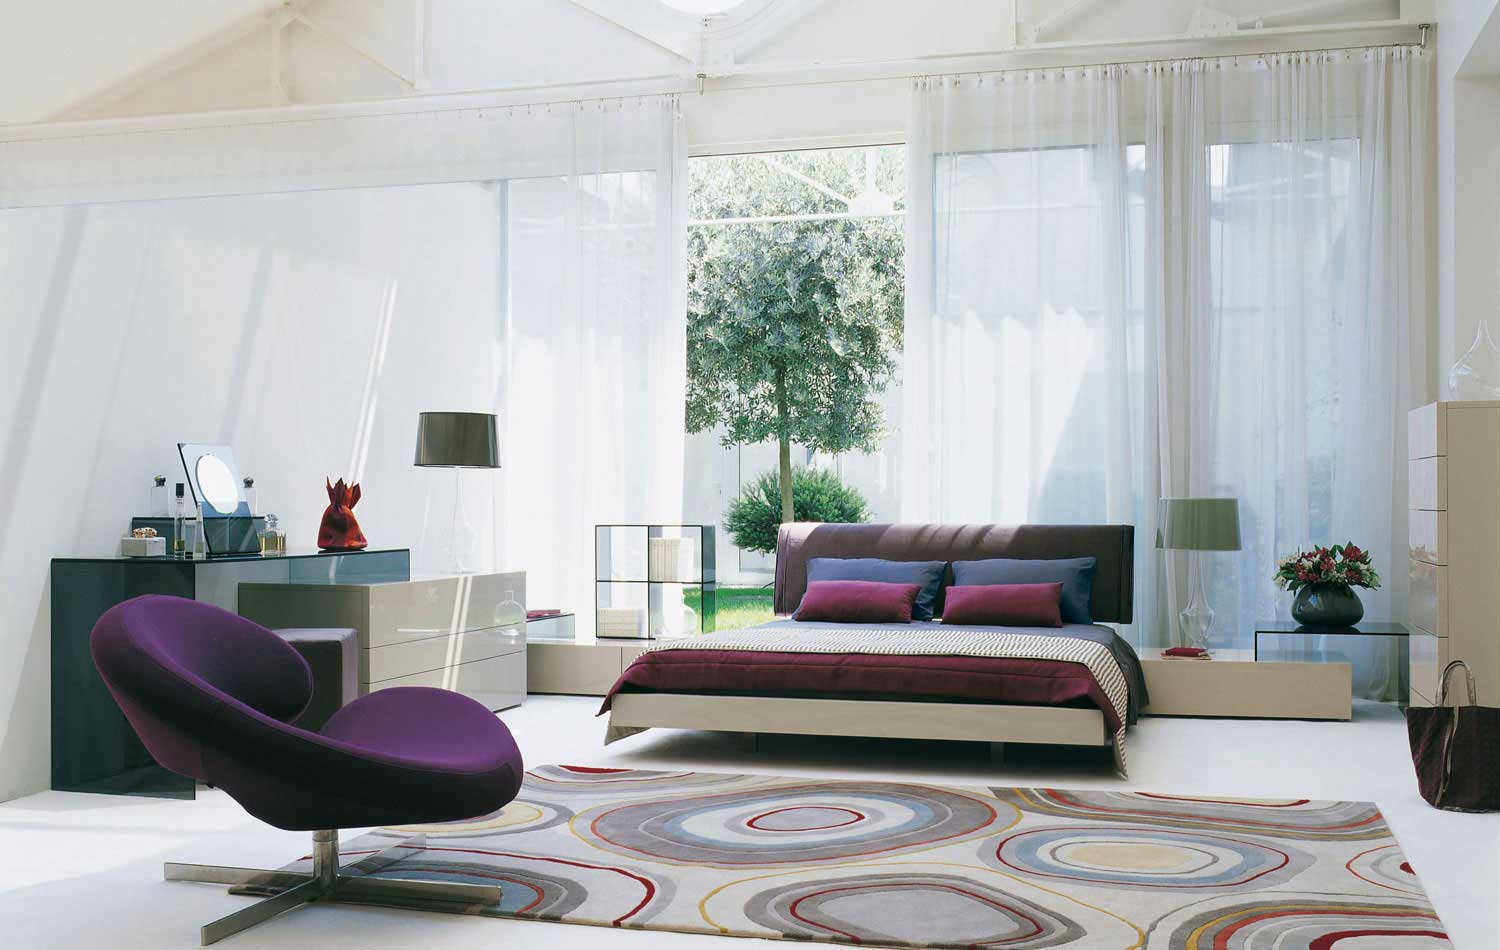 Bedrooms from roche bobois - Cortinas vintage dormitorio ...